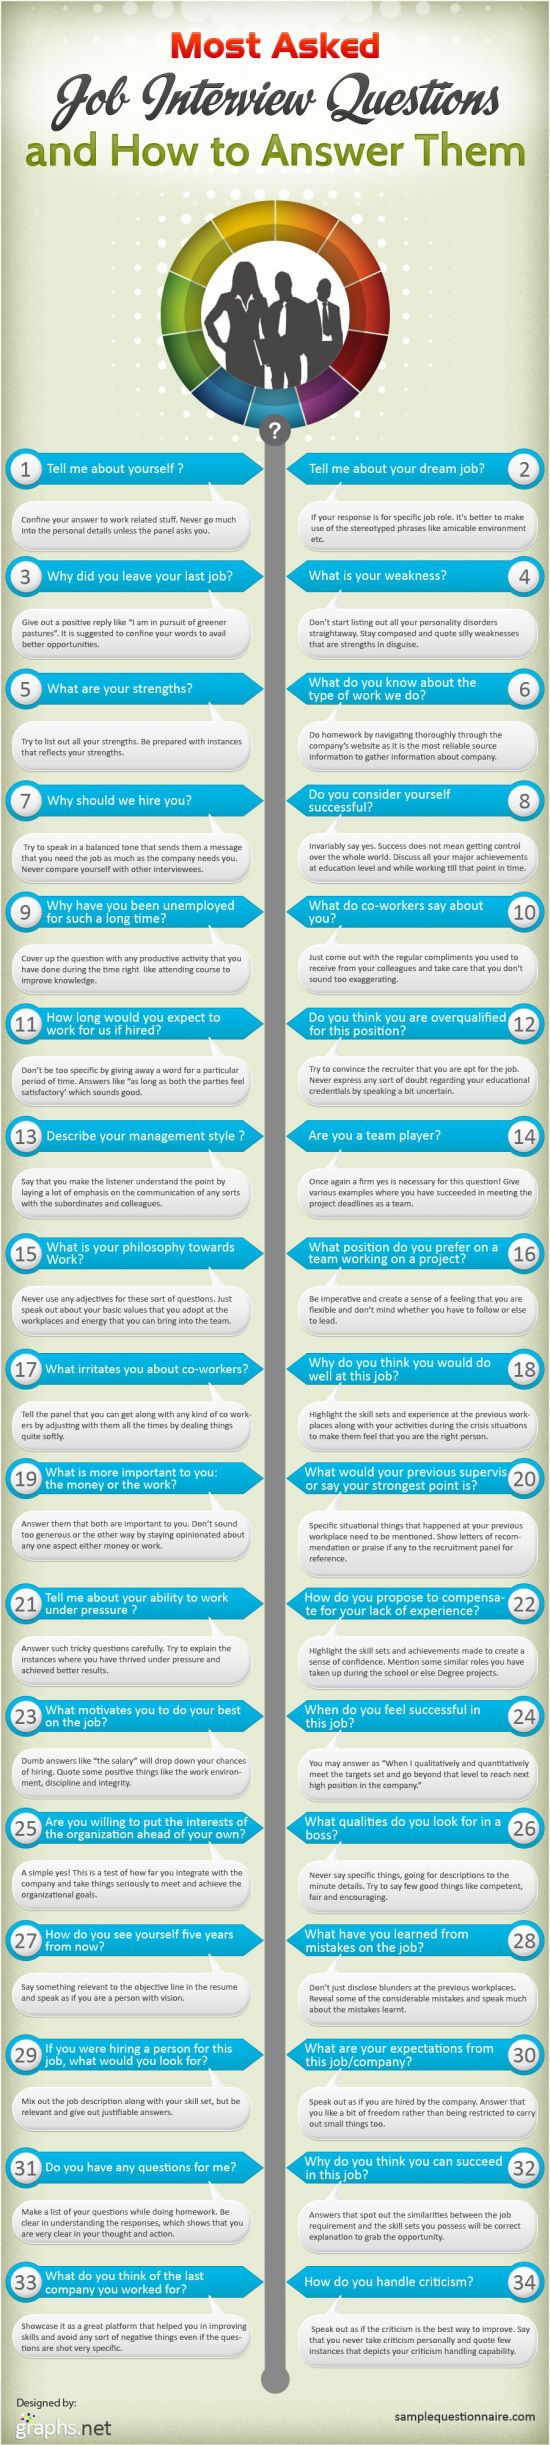 best ideas about interviewing tips interview 34 most asked job interview questions how to answer them